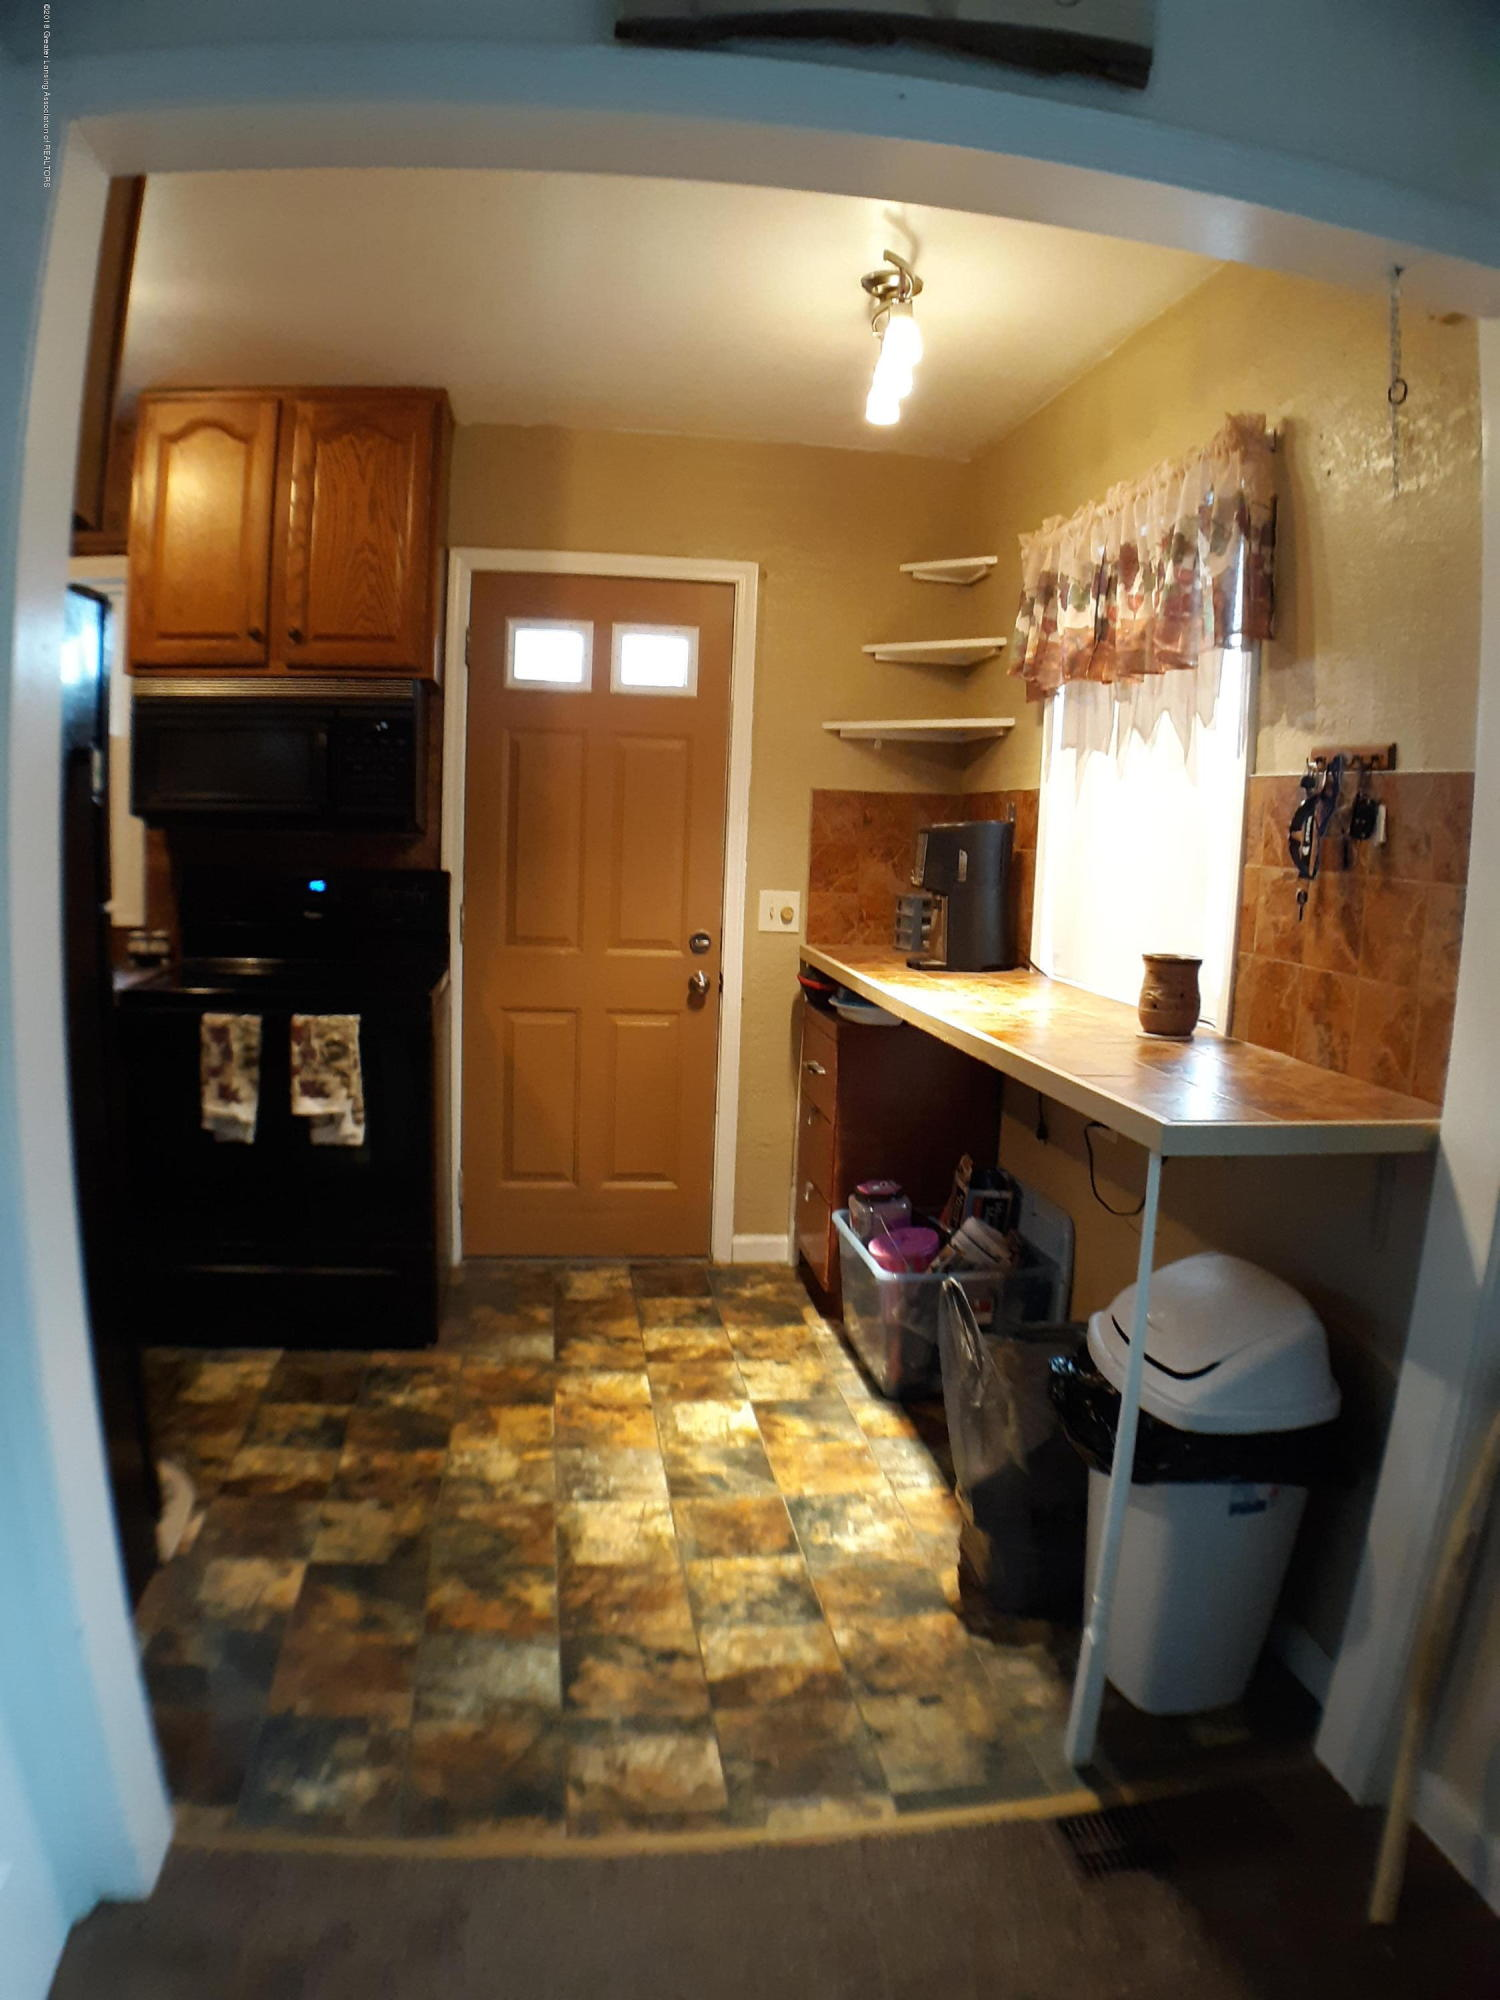 1718 Victor Ave - 1718 kitchen 3 - 4